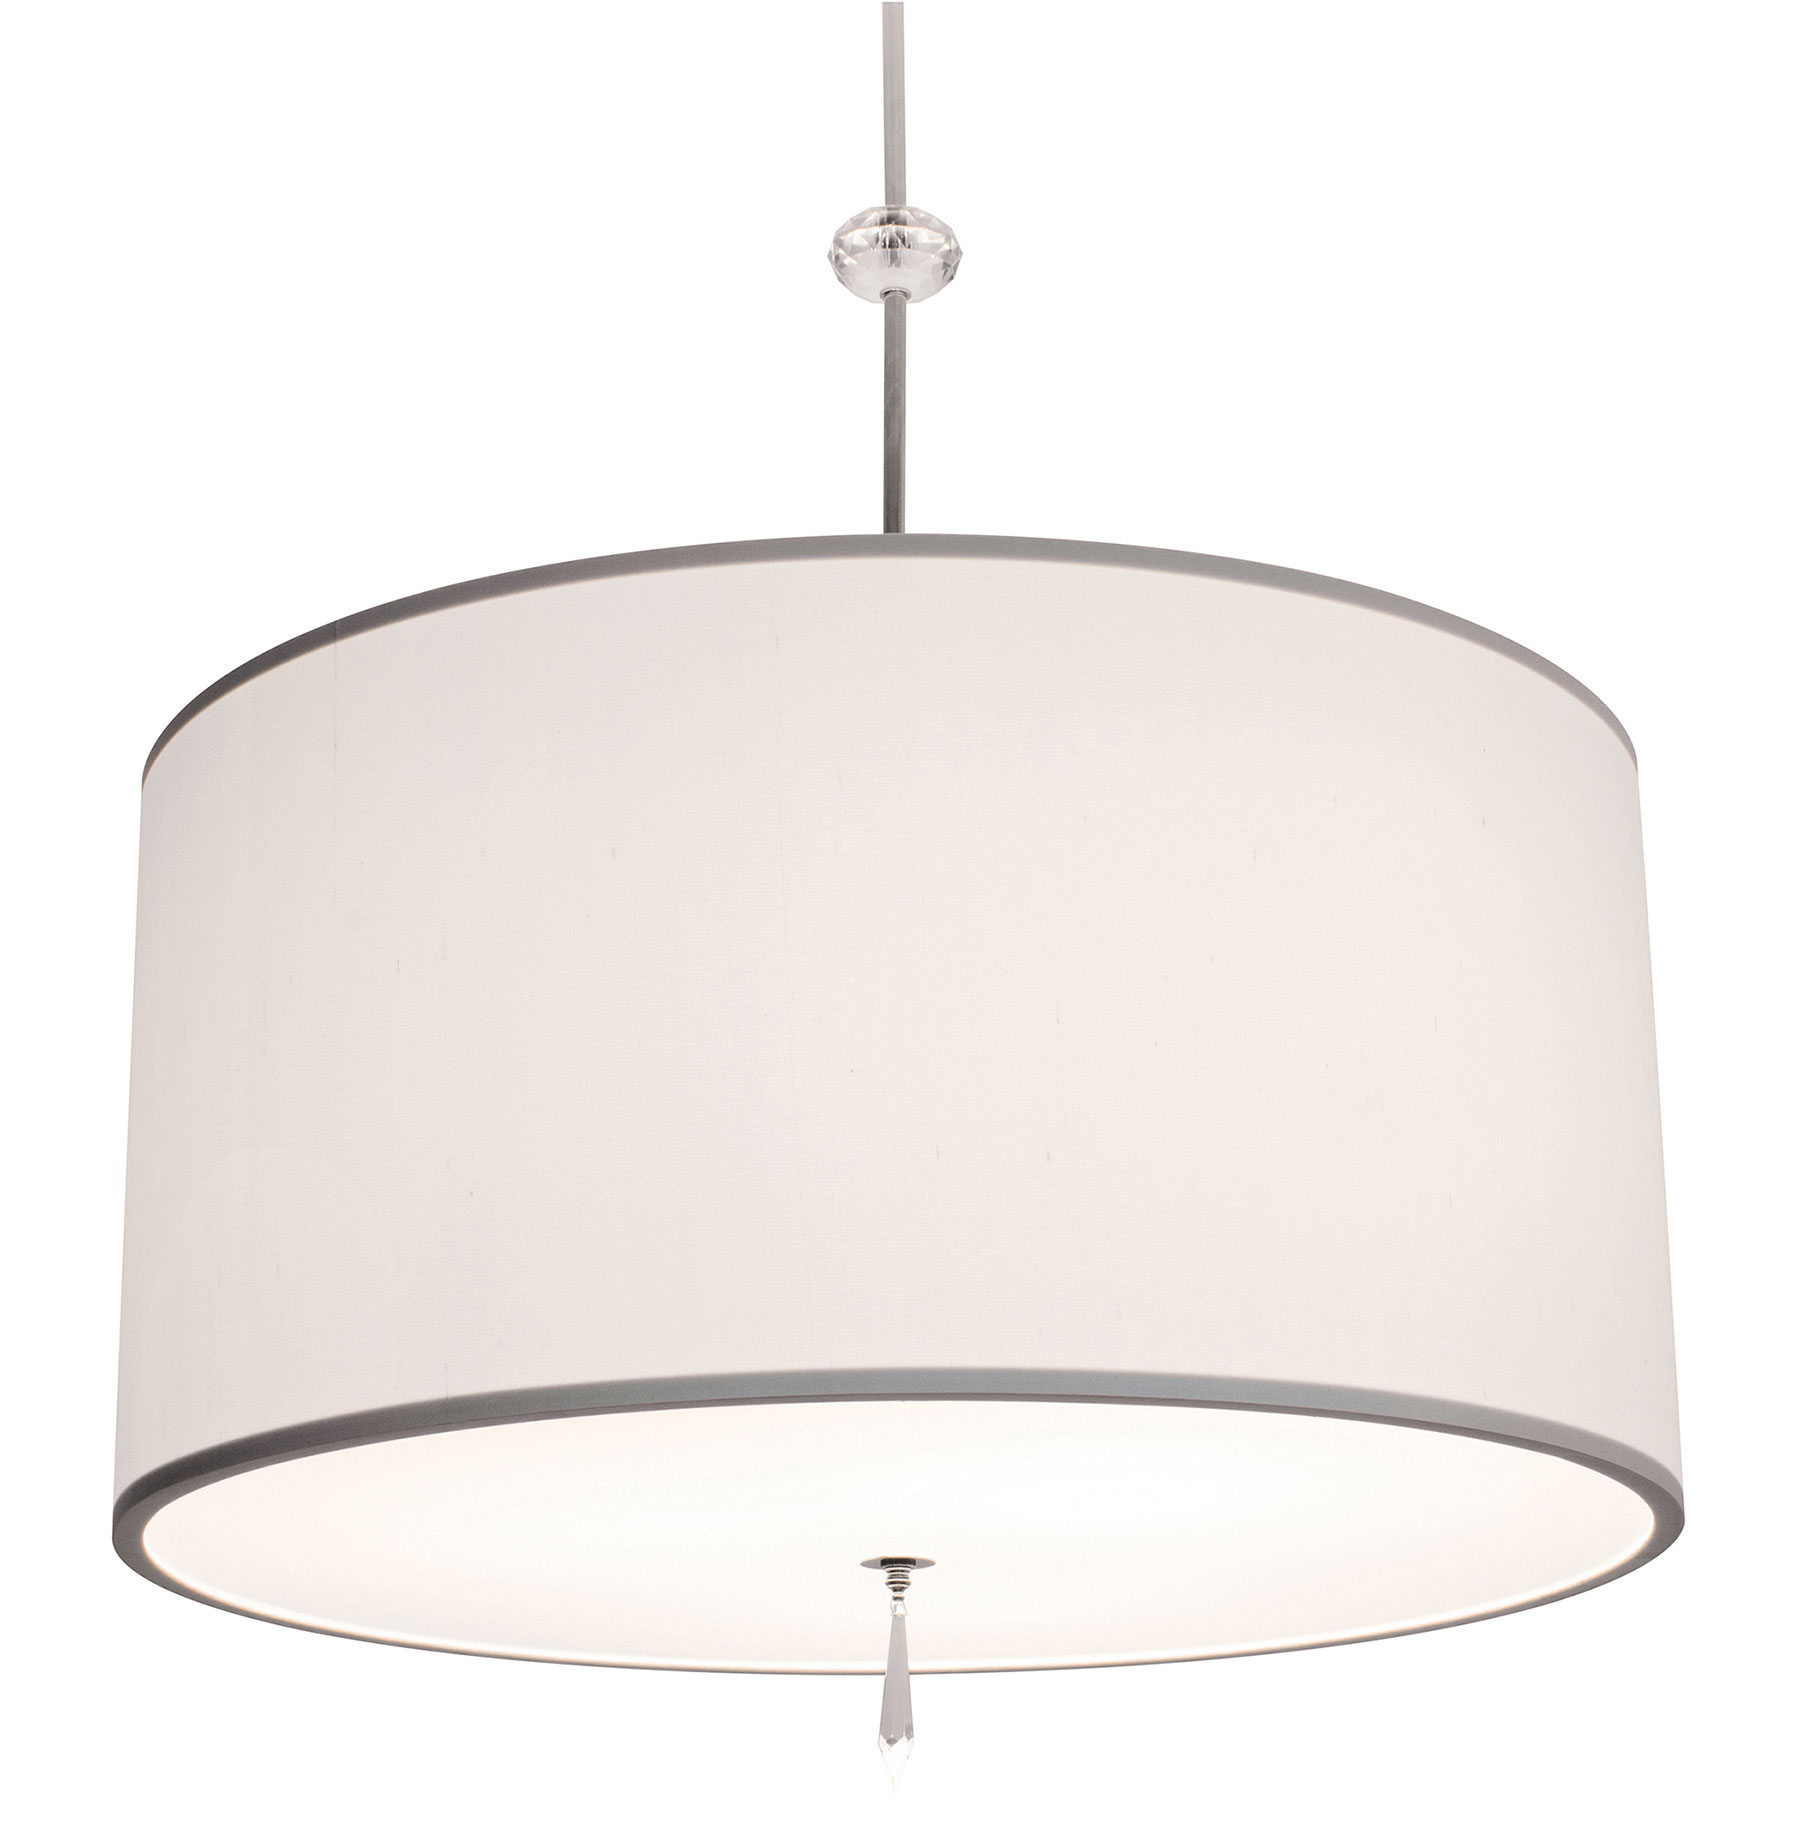 Athens Led Pendant By Stonegate Afx Sathp02l1 Bn 209